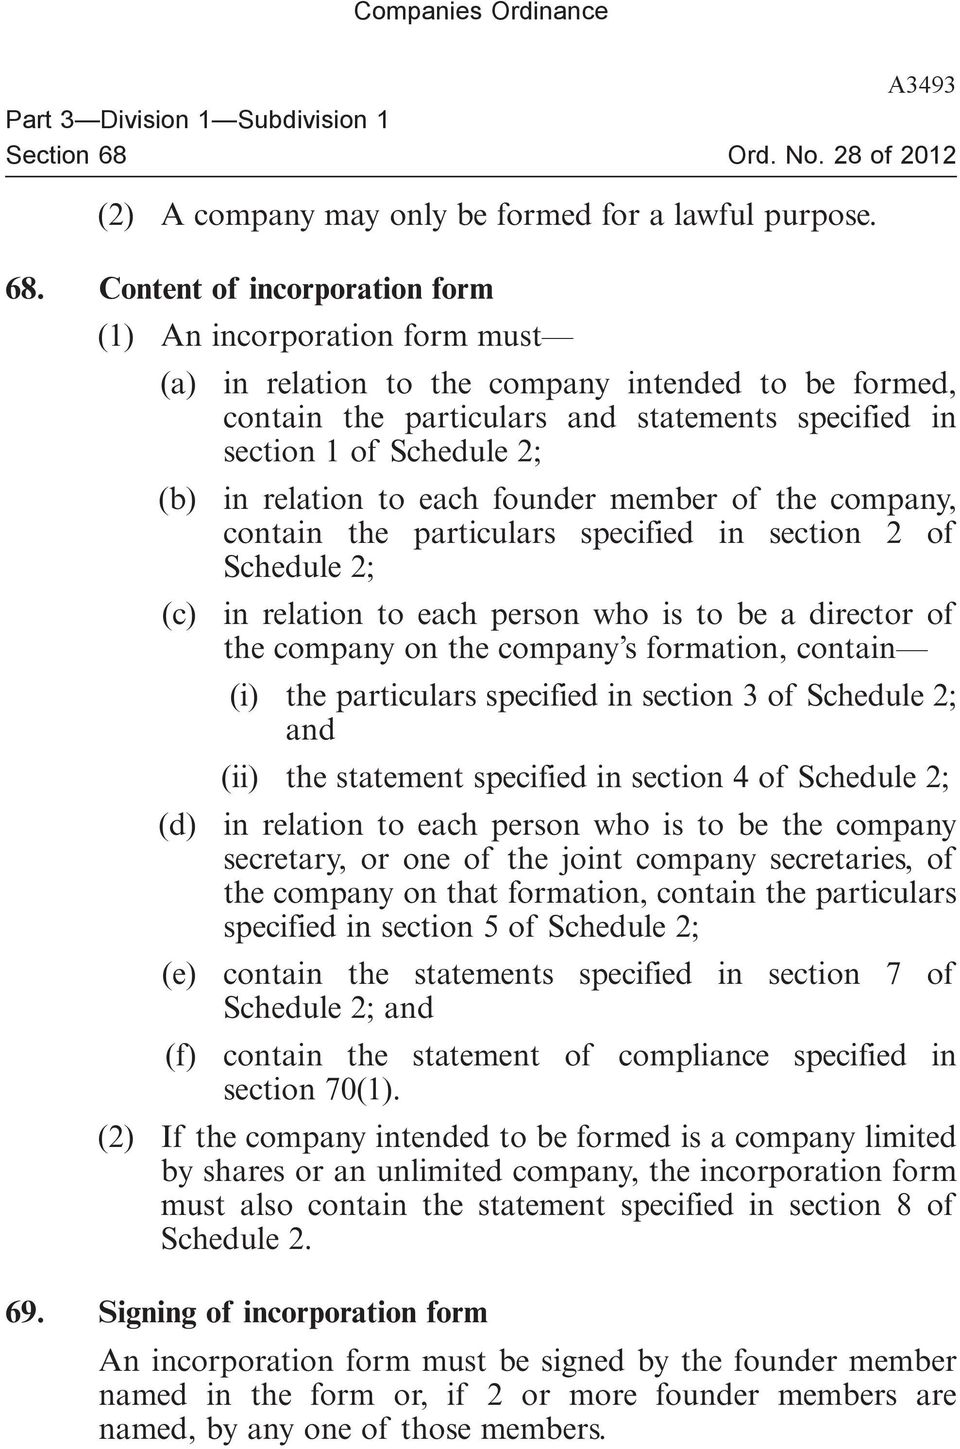 Content of incorporation form (1) An incorporation form must (a) in relation to the company intended to be formed, contain the particulars and statements specified in section 1 of Schedule 2; (b) in